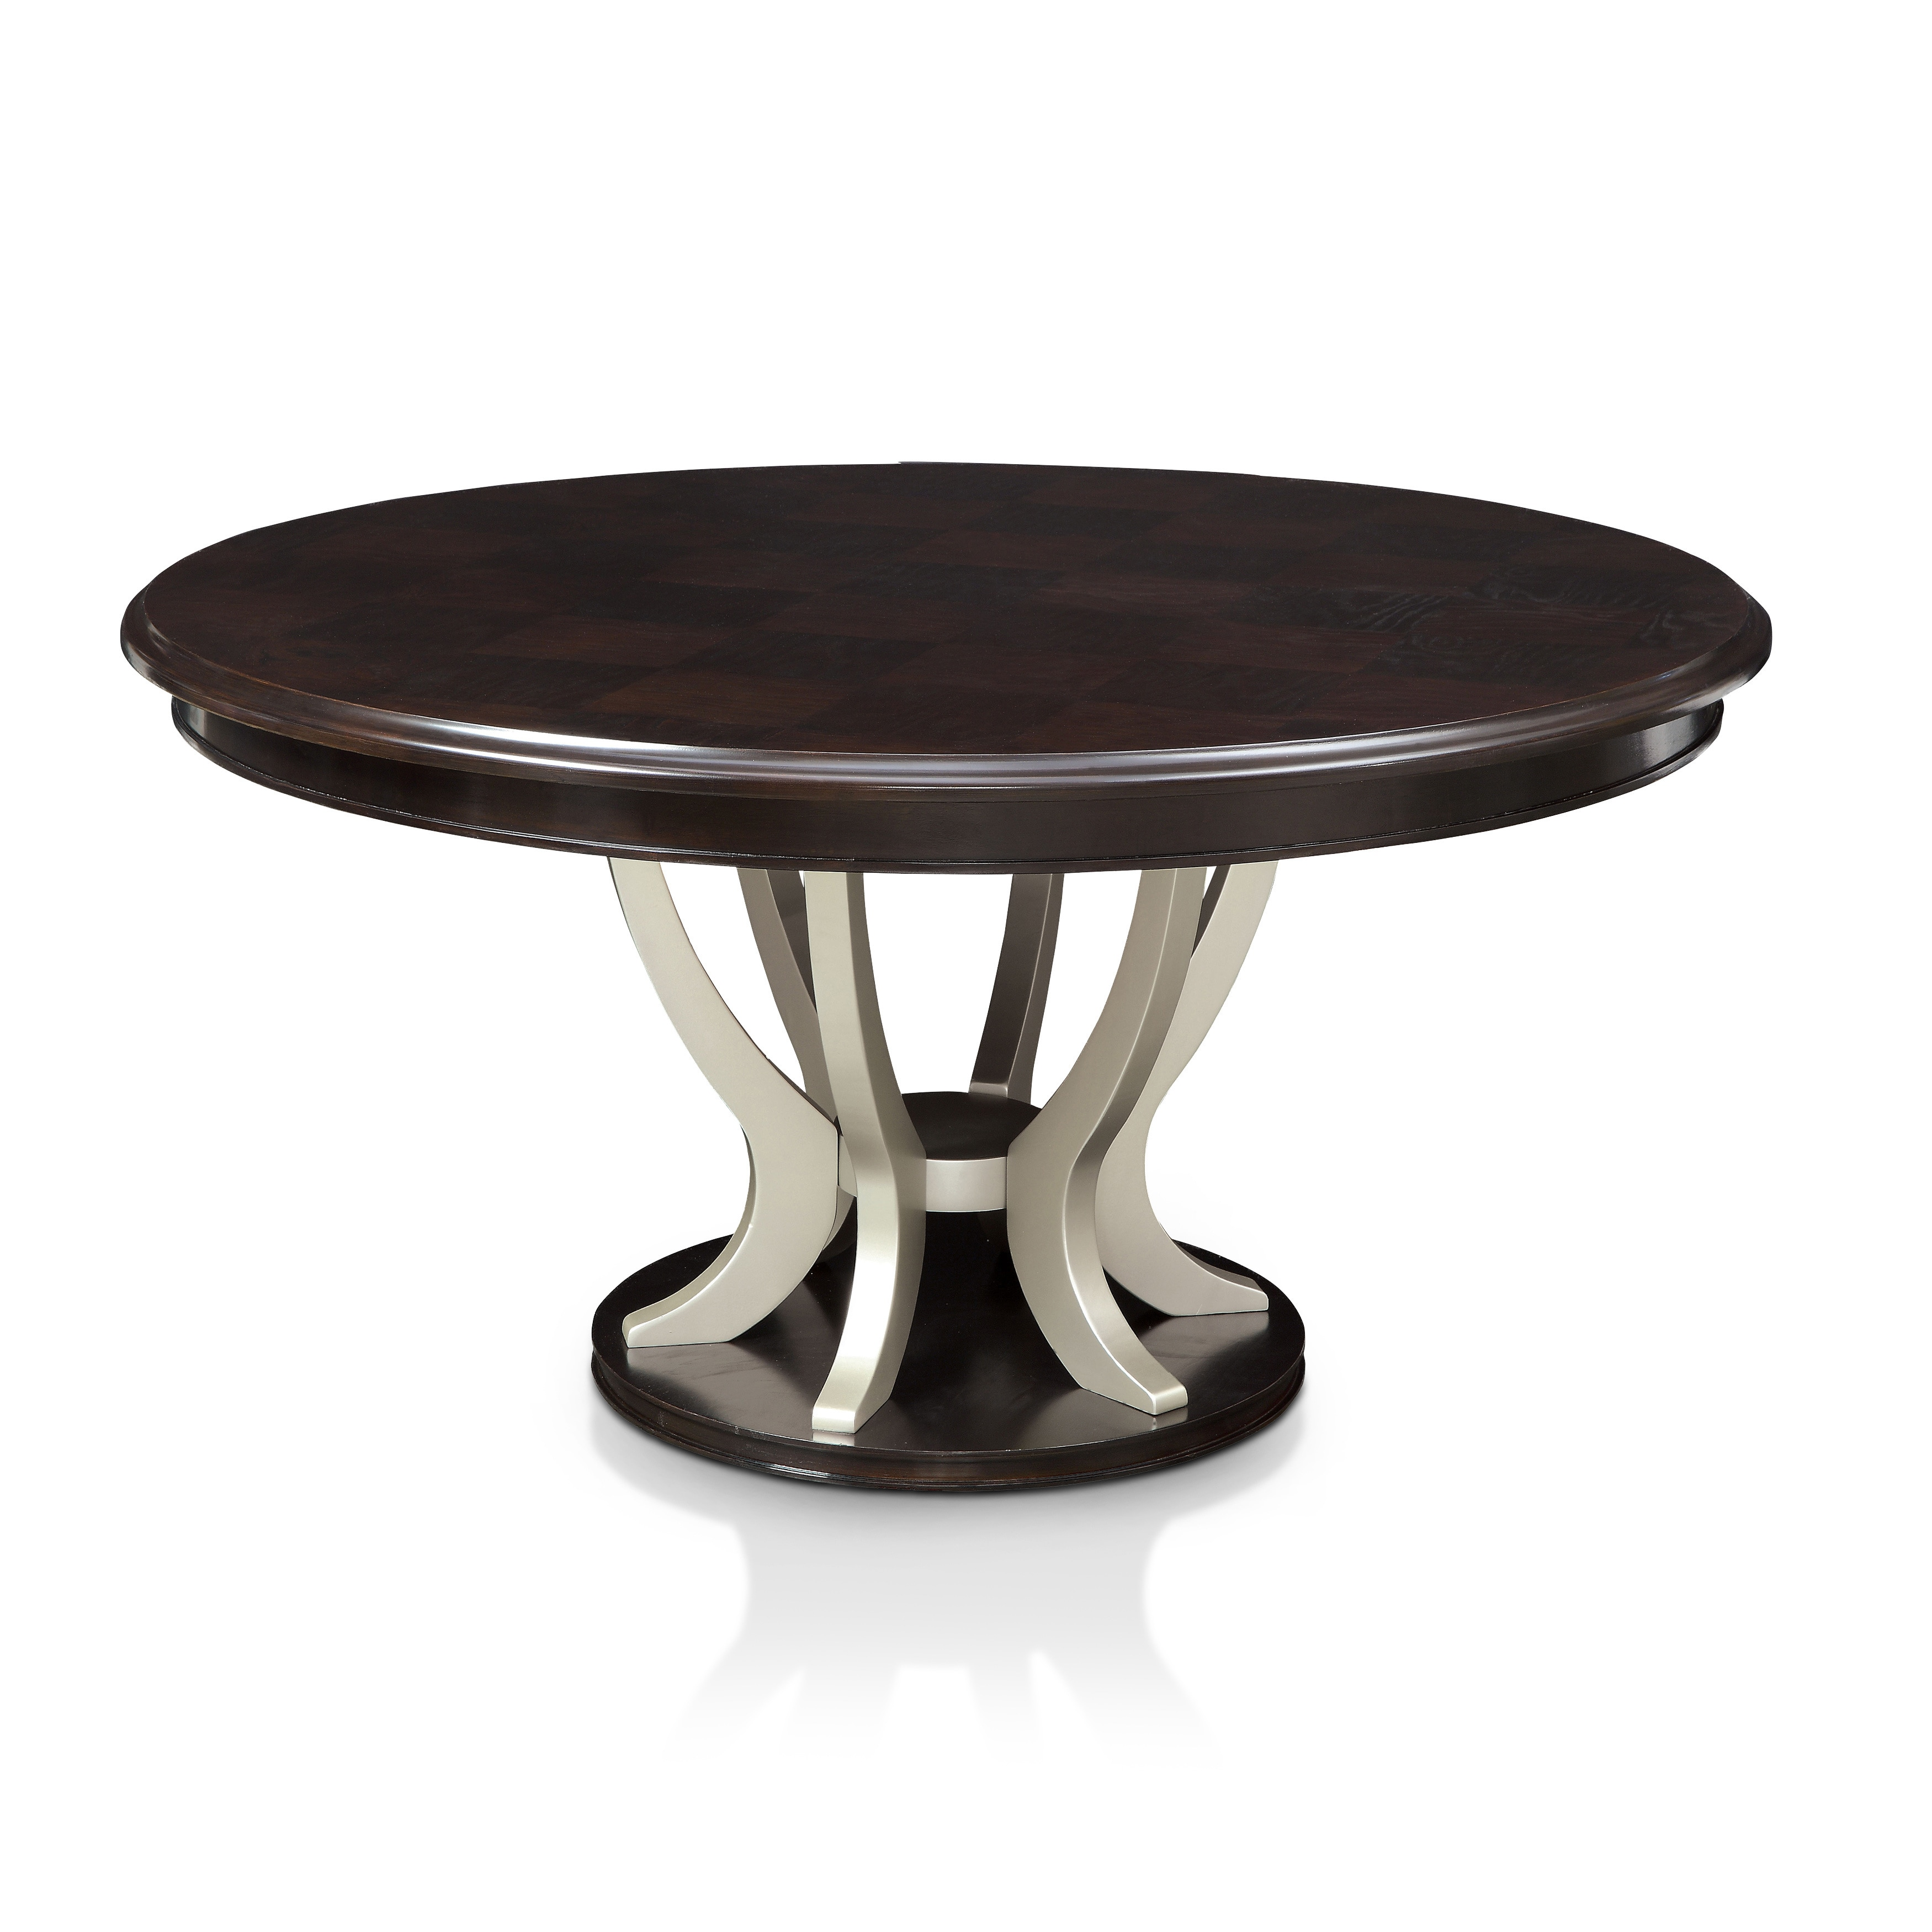 Furniture Of America Daphne Round Pedestal Espresso/Champagne Dining Table    Free Shipping Today   Overstock   19670141